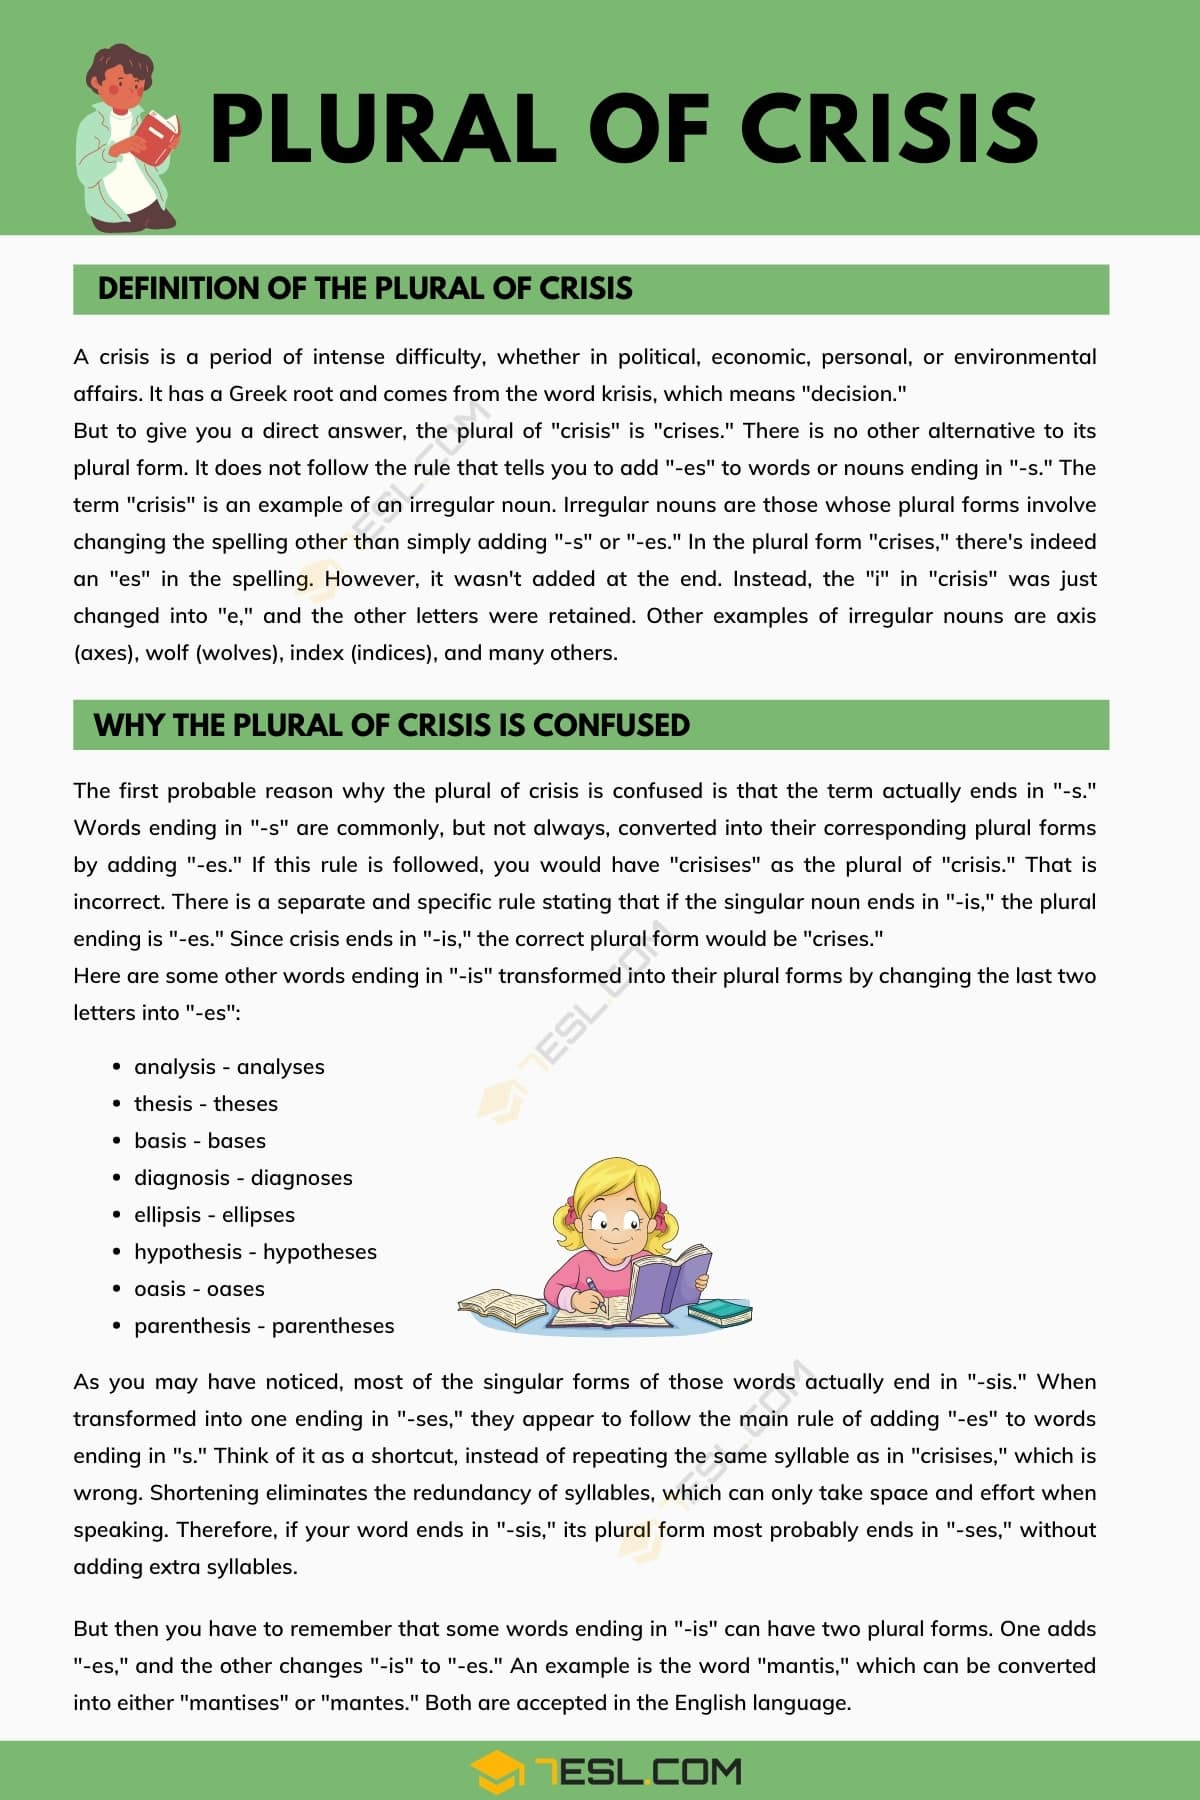 Plural of Crisis | Definition of Plural of Crisis & Why the Plural of Crisis Is Confused?